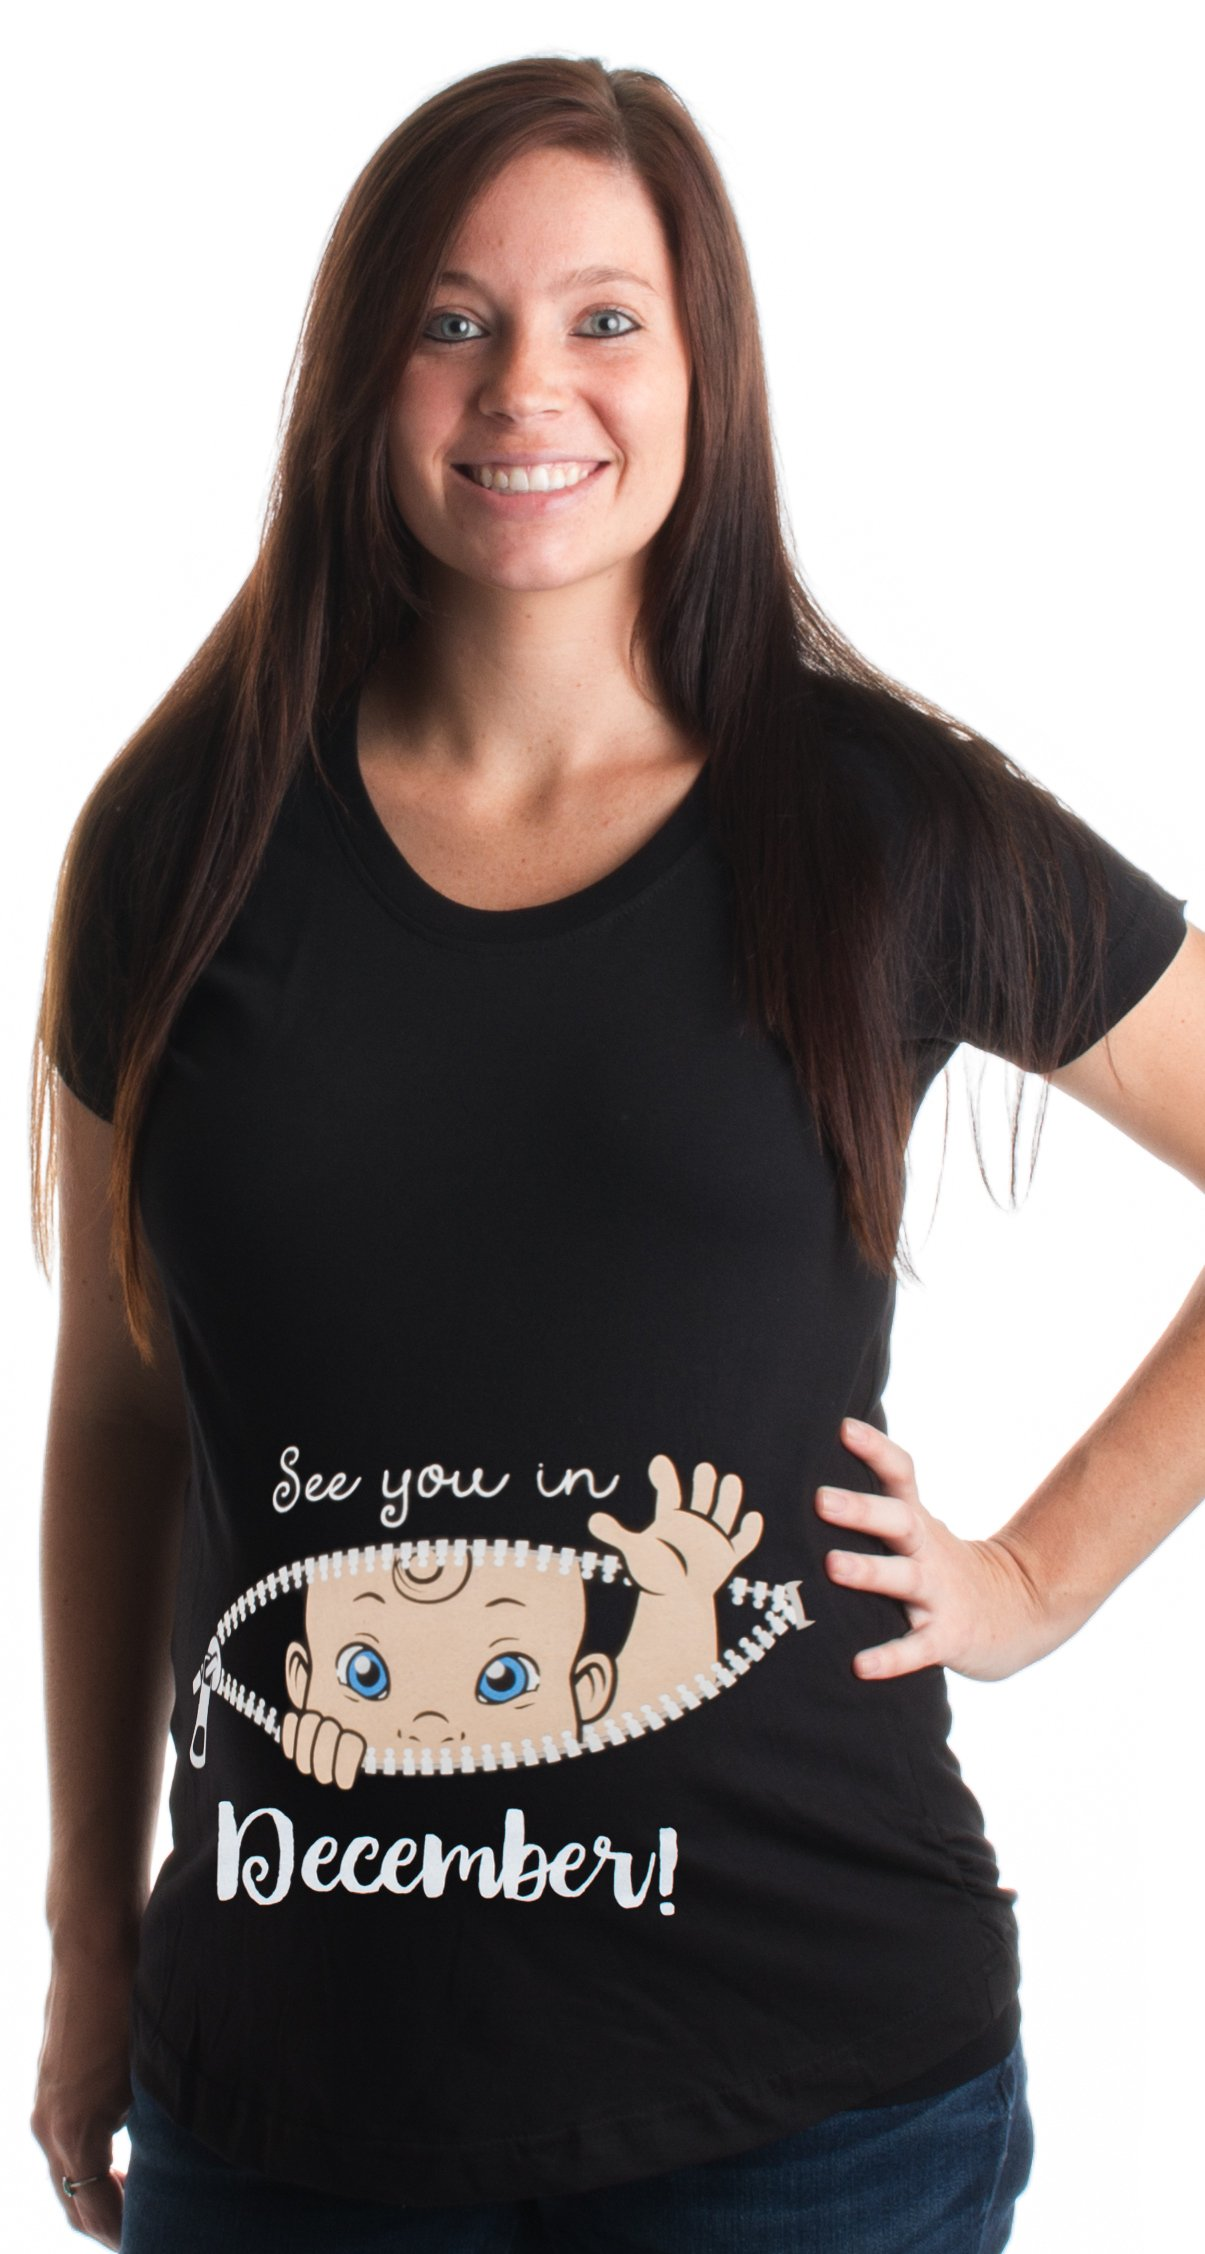 Ann Arbor T-shirt Co. See You In December! | Cute Pregnancy Humor, New Mommy Scoop Neck Maternity Top-(Matern,L)